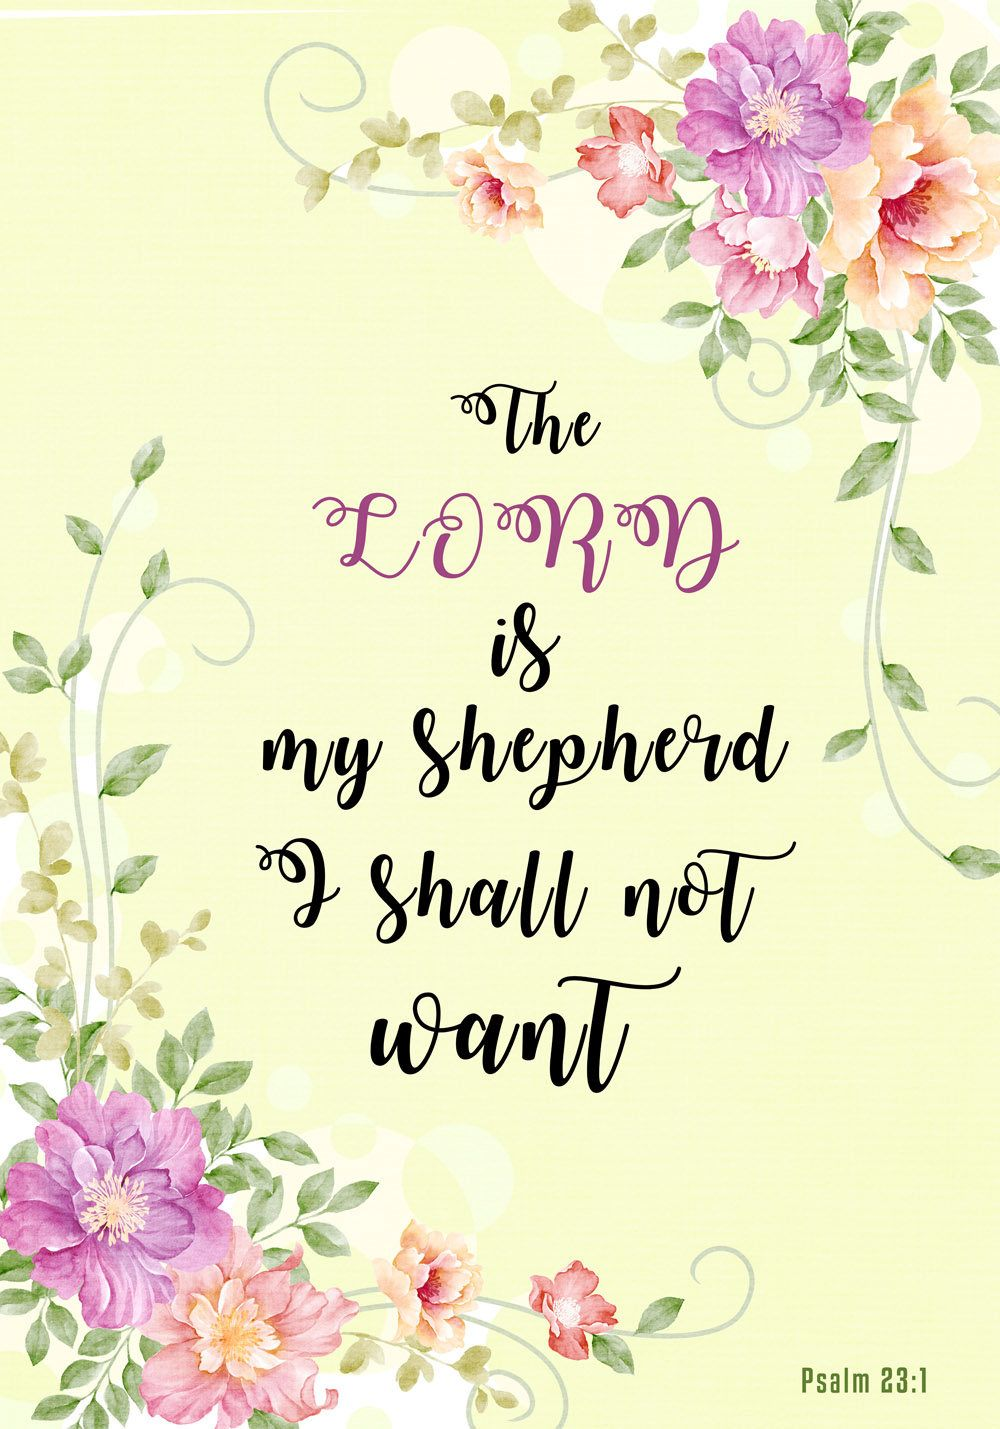 Christian Wall Poster - Psalm 23 1, The Lord is my shepherd ...